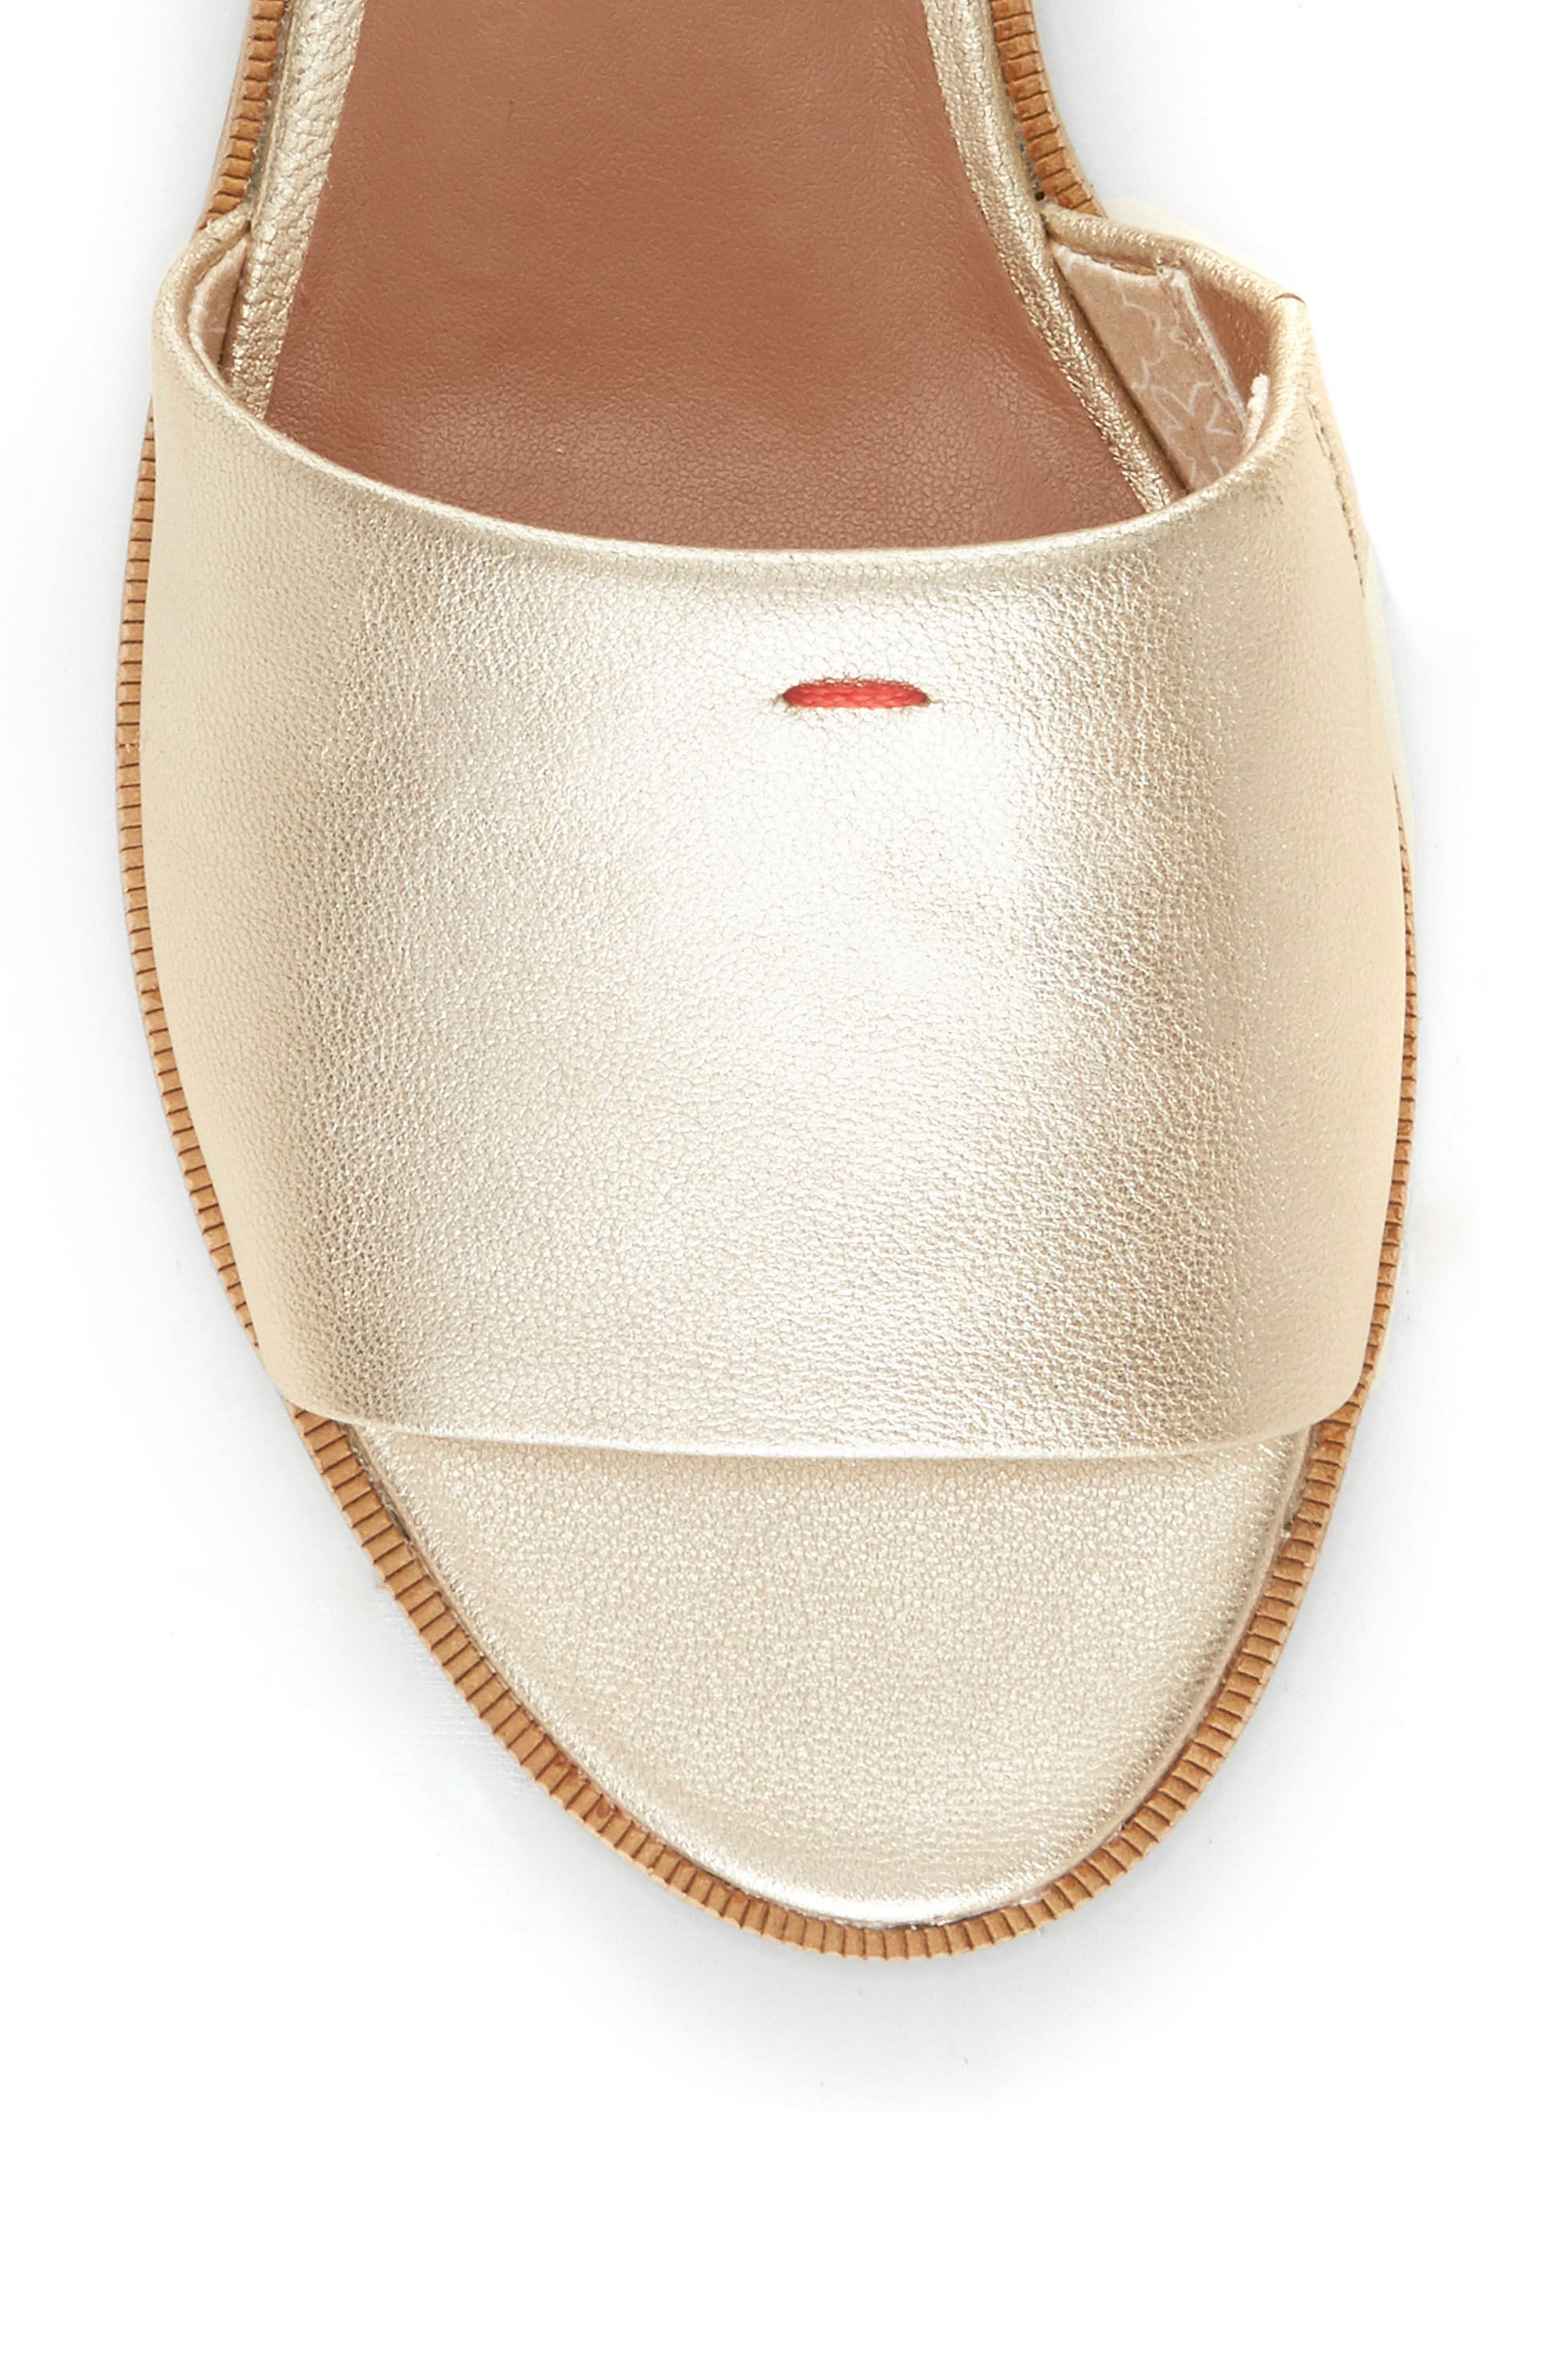 Solay Sandal,                             Alternate thumbnail 5, color,                             Prosecco Leather